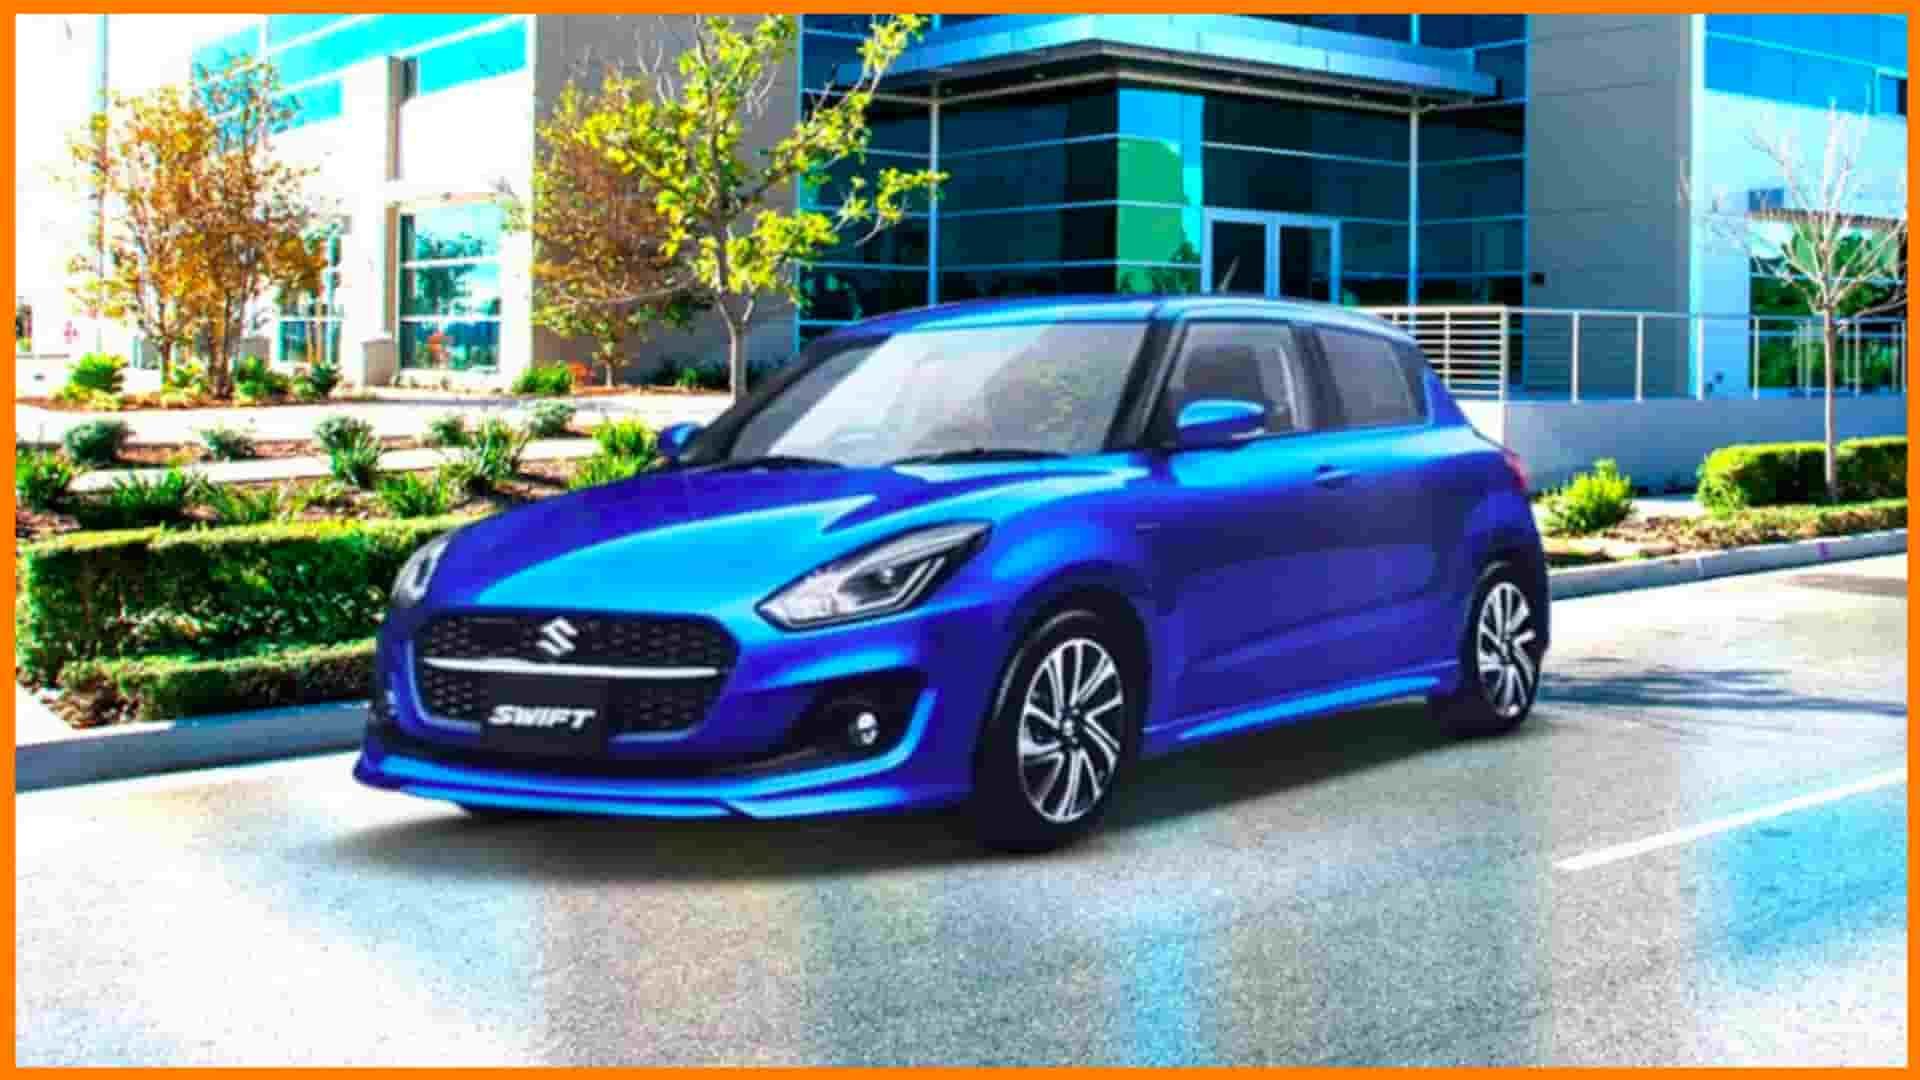 2020 Maruti Swift Facelift: 5 Things We Know